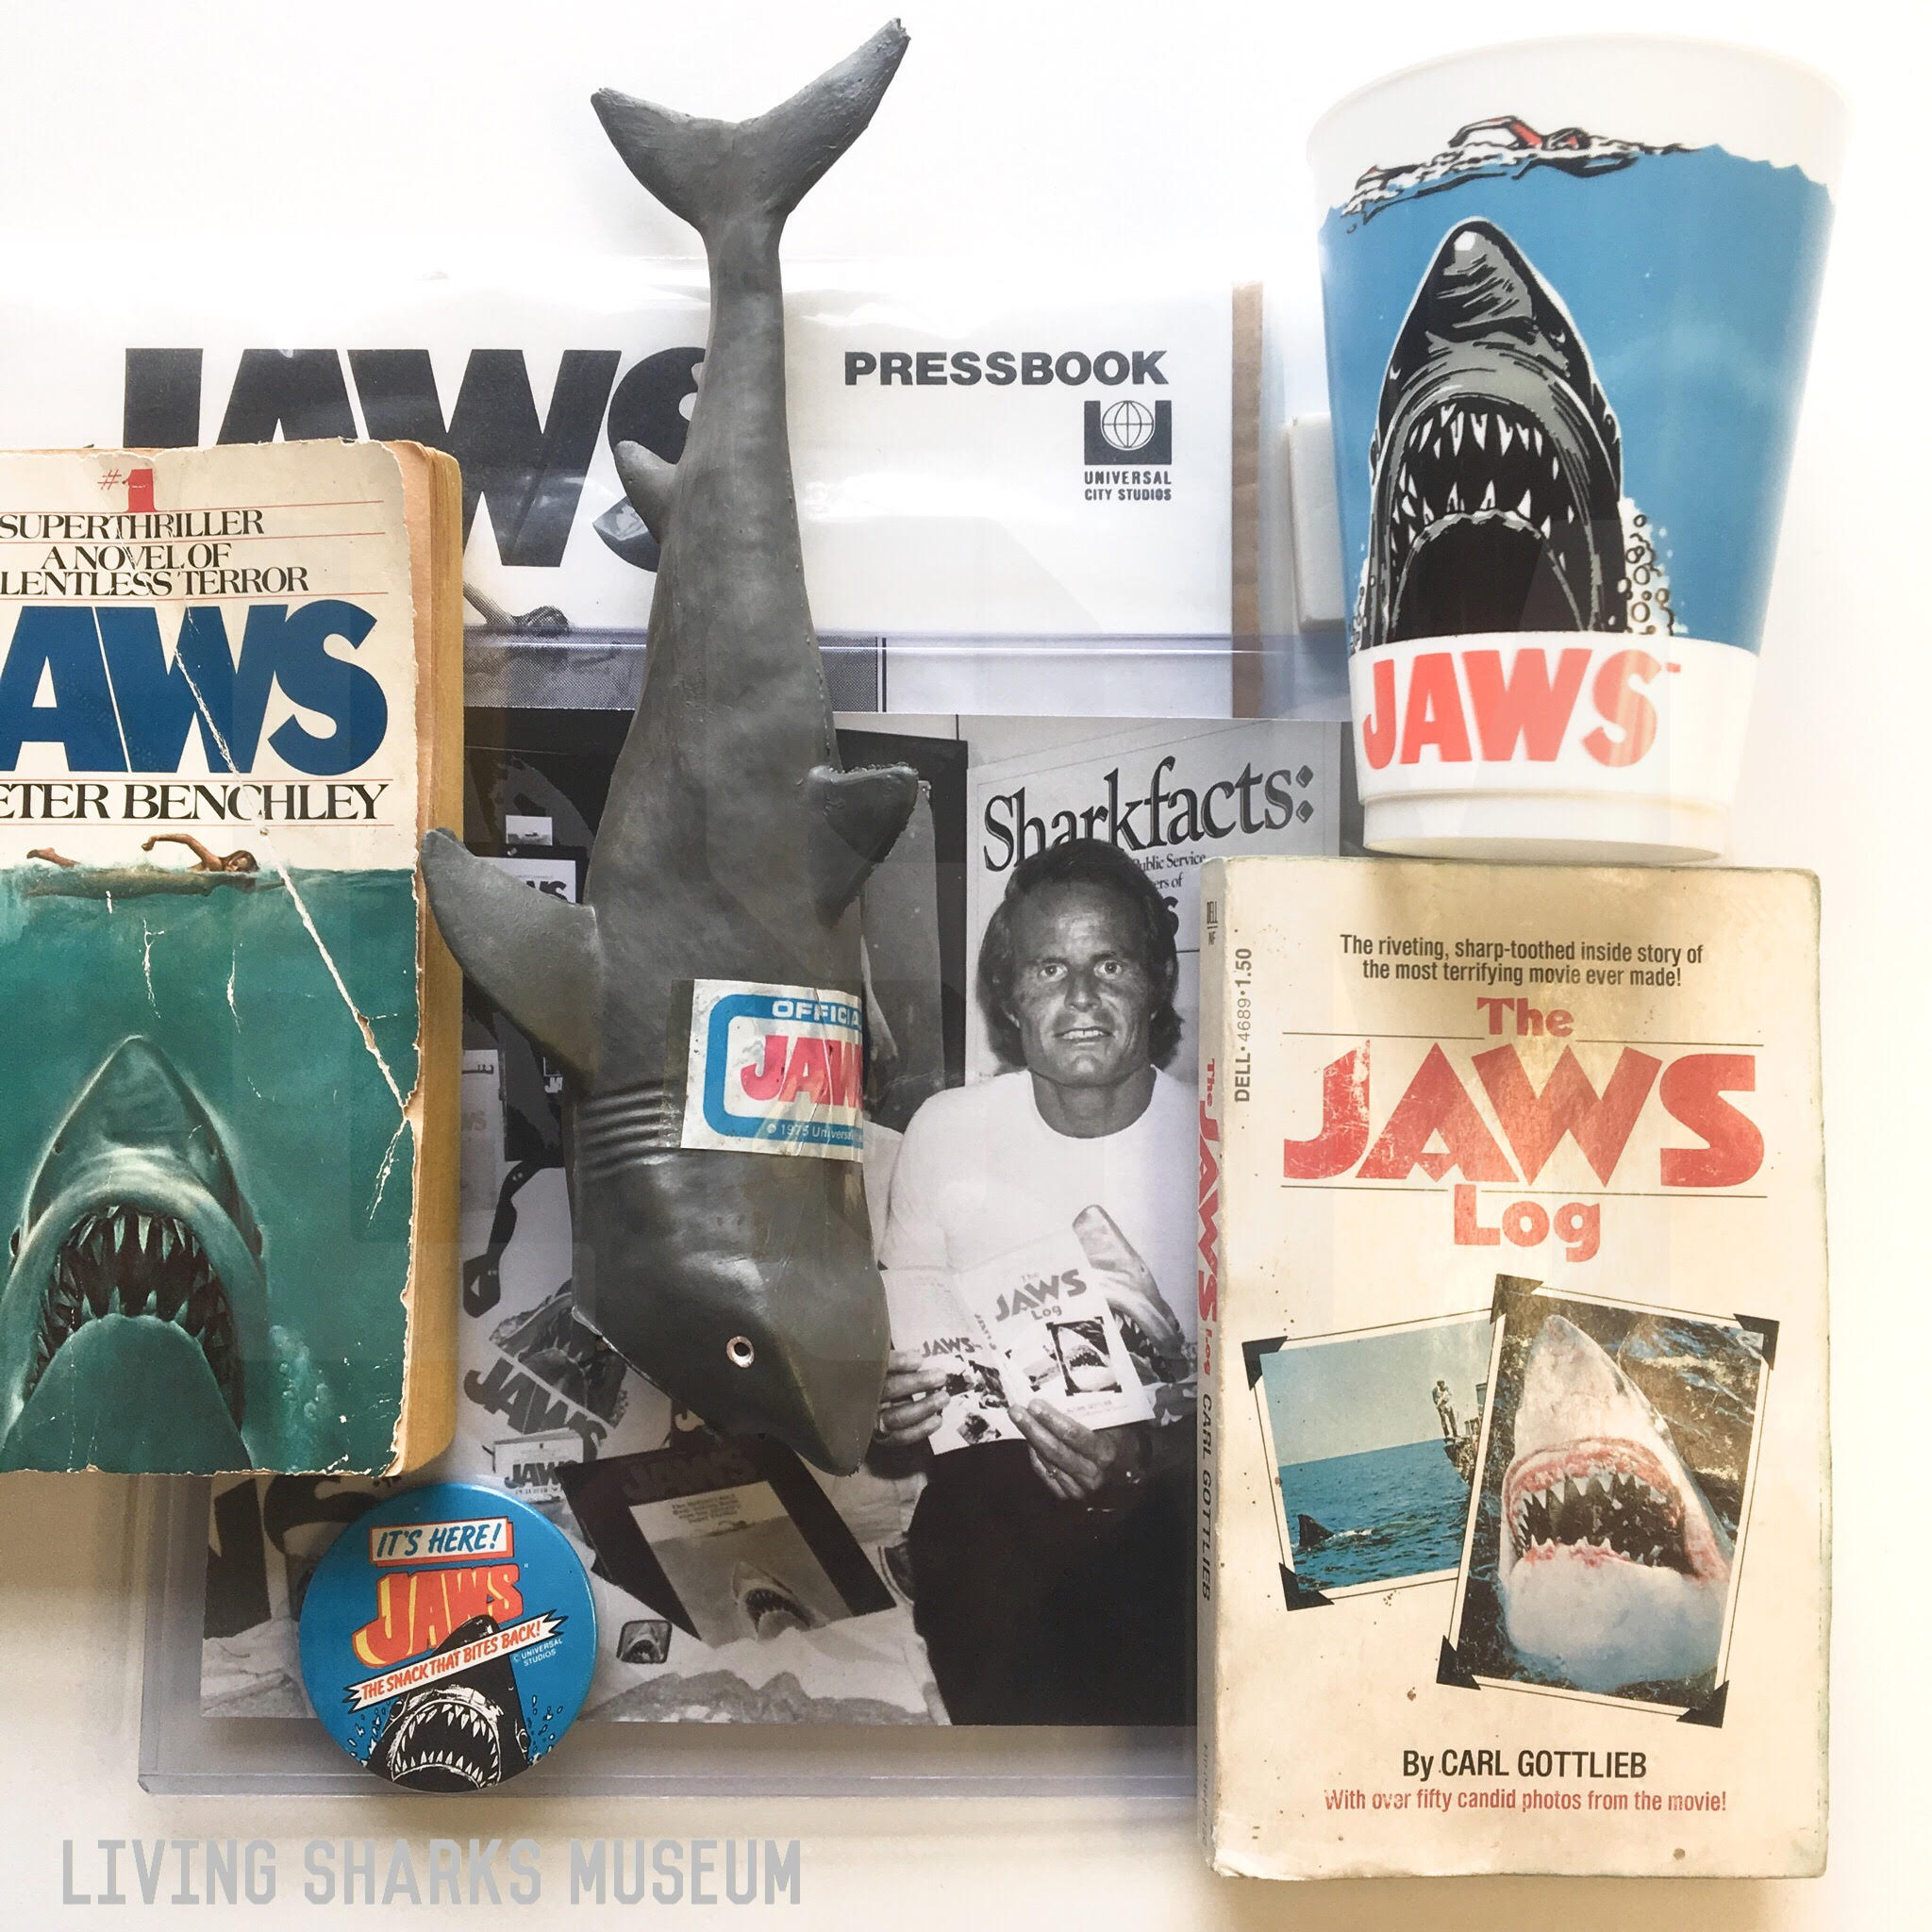 """JAWS '75 MERCH - When Universal realized the potential after the opening of Jaws in 1975, the producers greenlit countless merchandising deals. Collectibles ranged from posters, books, jewelry, clothing, rubber sharks, drink cups, etc. This included the book The Jaws Log, a post-release rush-written """"diary"""" of the making of the film, commissioned to Jaws screenwriter Carl Gottlieb, who also portrayed the newspaper reporter in the film.The press photograph shows Jaws producer Richard Zanuck amongst the whole array of advertising and merchandising materials made to satisfy public craving._____________________JAWS RUBBER SHARK TOY 1975JAWS DRINK CUP 1975JAWS LOG by CARL GOTTLIEB 1975Private Collection - Keith M. Cowley"""